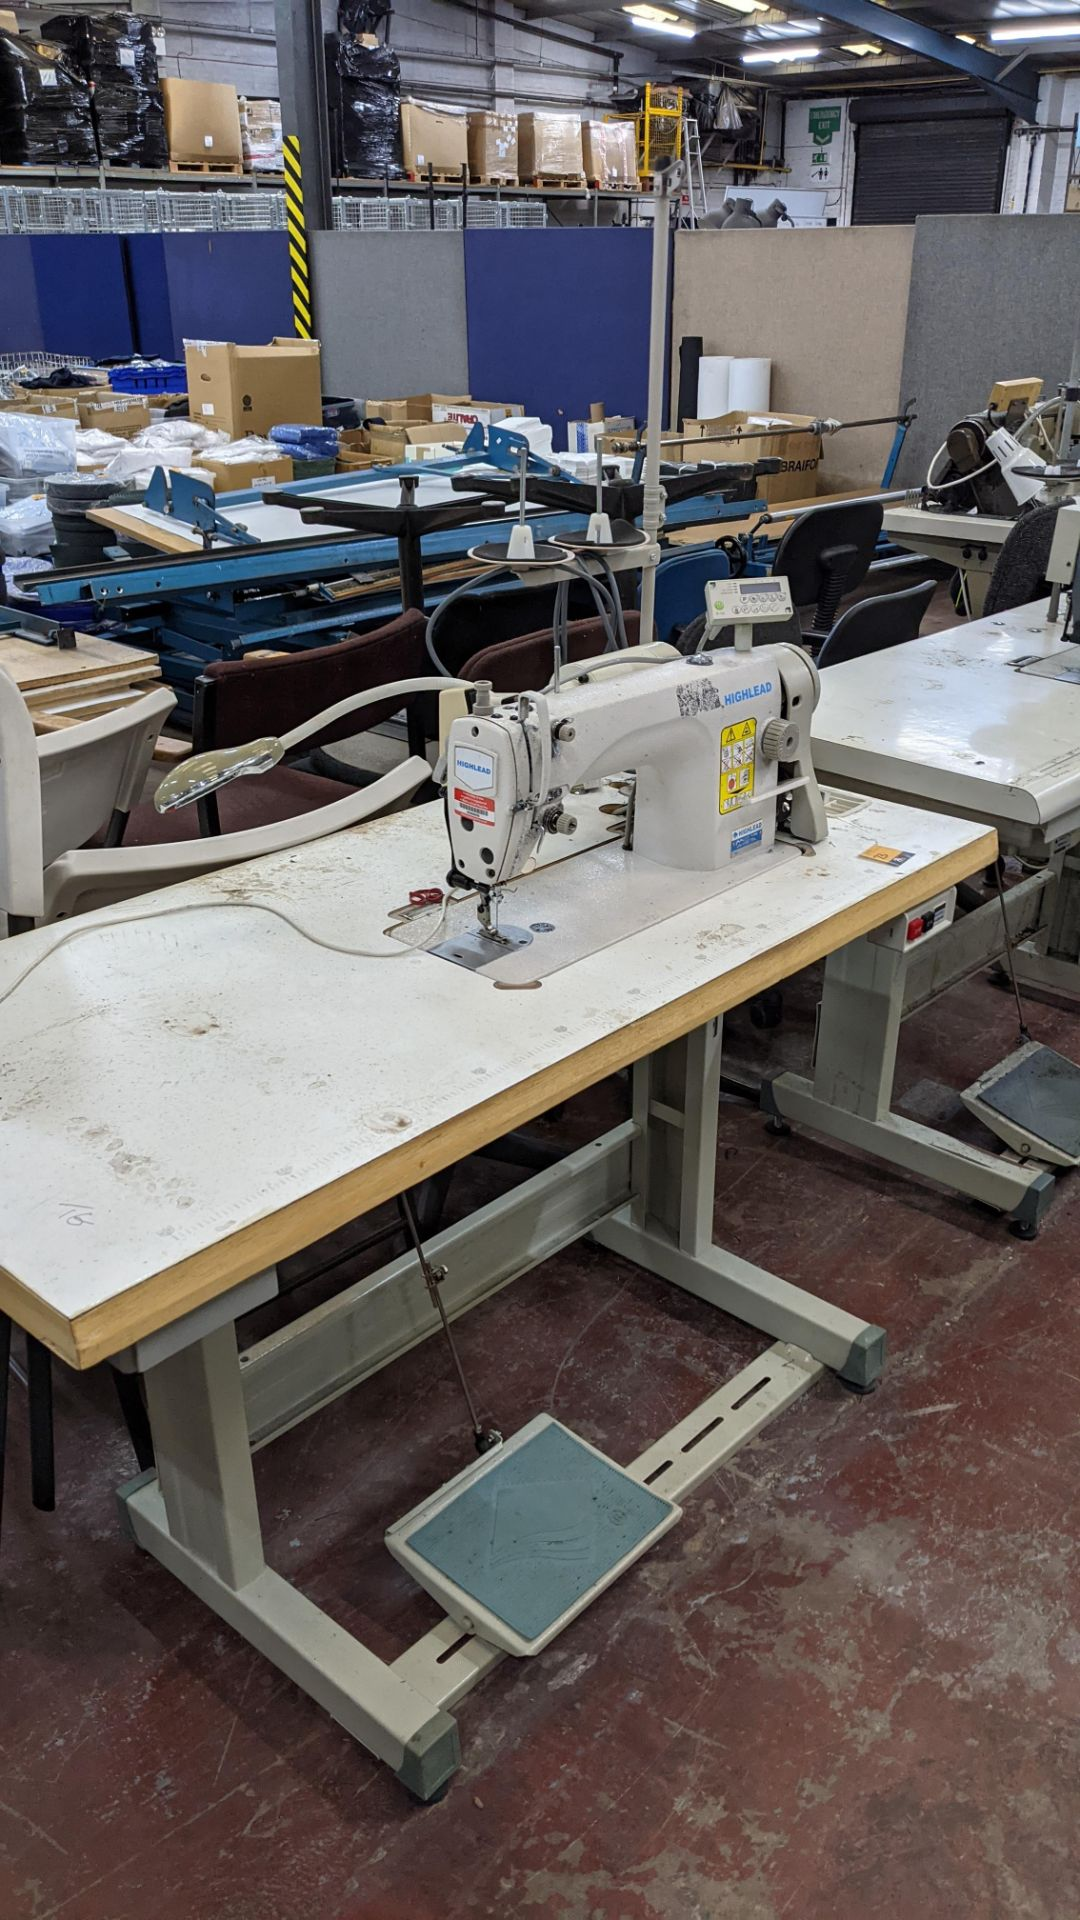 Highlead model GC188-MD sewing machine with model F-10 digital controller - Image 14 of 16